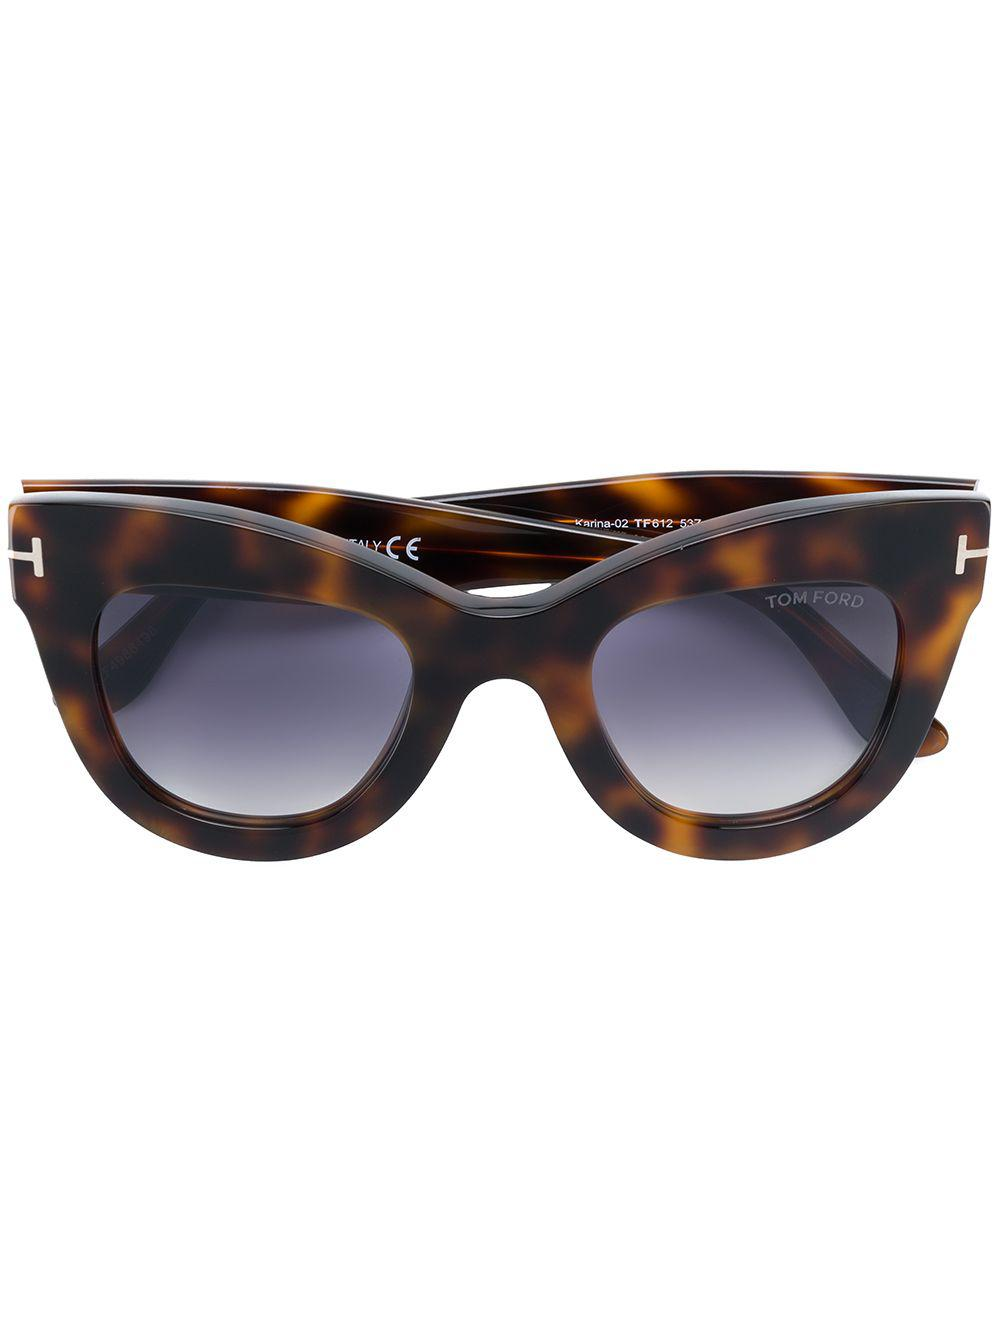 40786d573a Gallery. Previously sold at  Farfetch · Women s Cat Eye Sunglasses Women s Tom  Ford ...